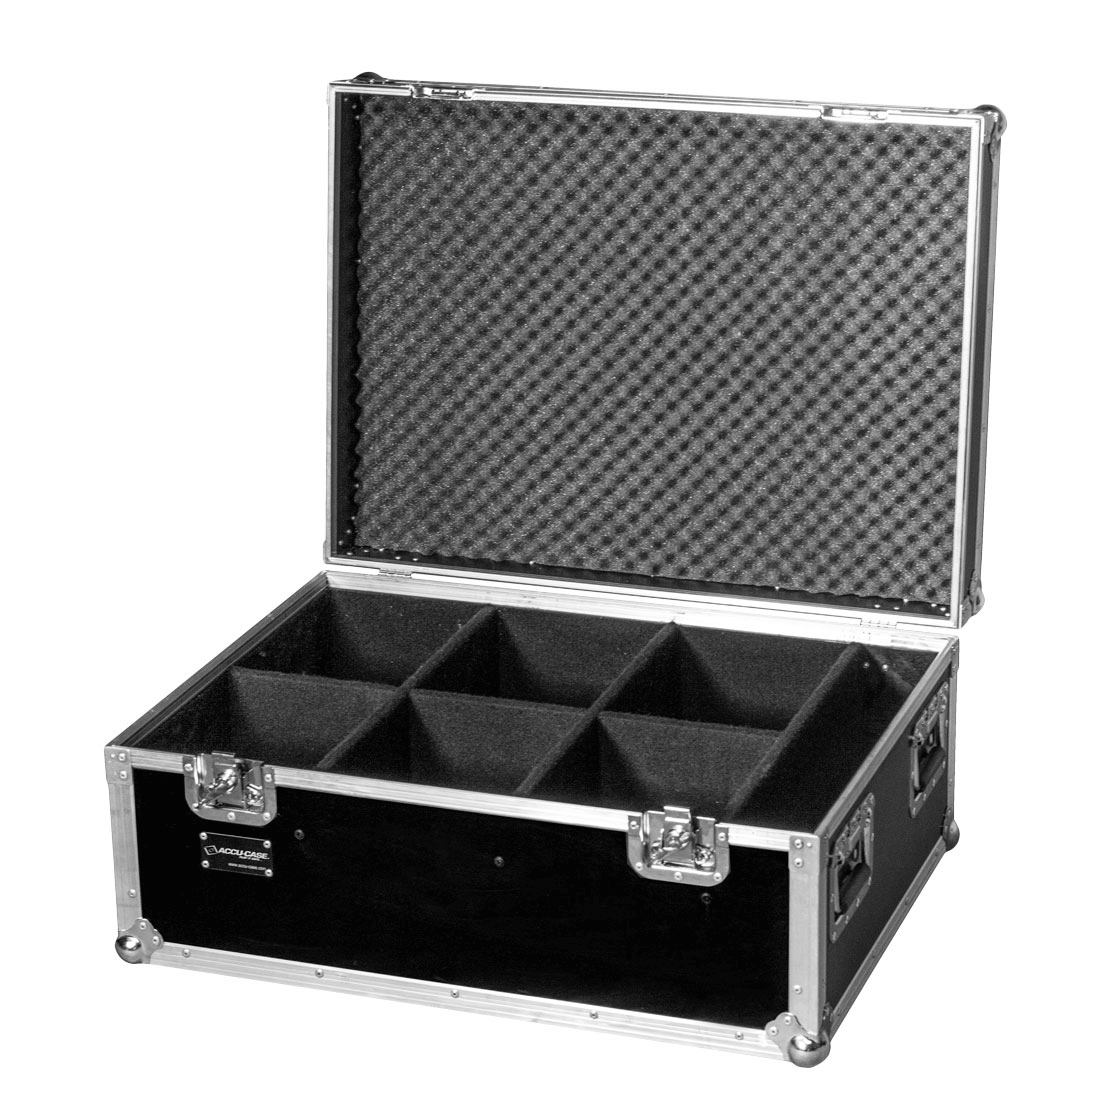 ADJ Touring Case for 6 x LED Par Universal